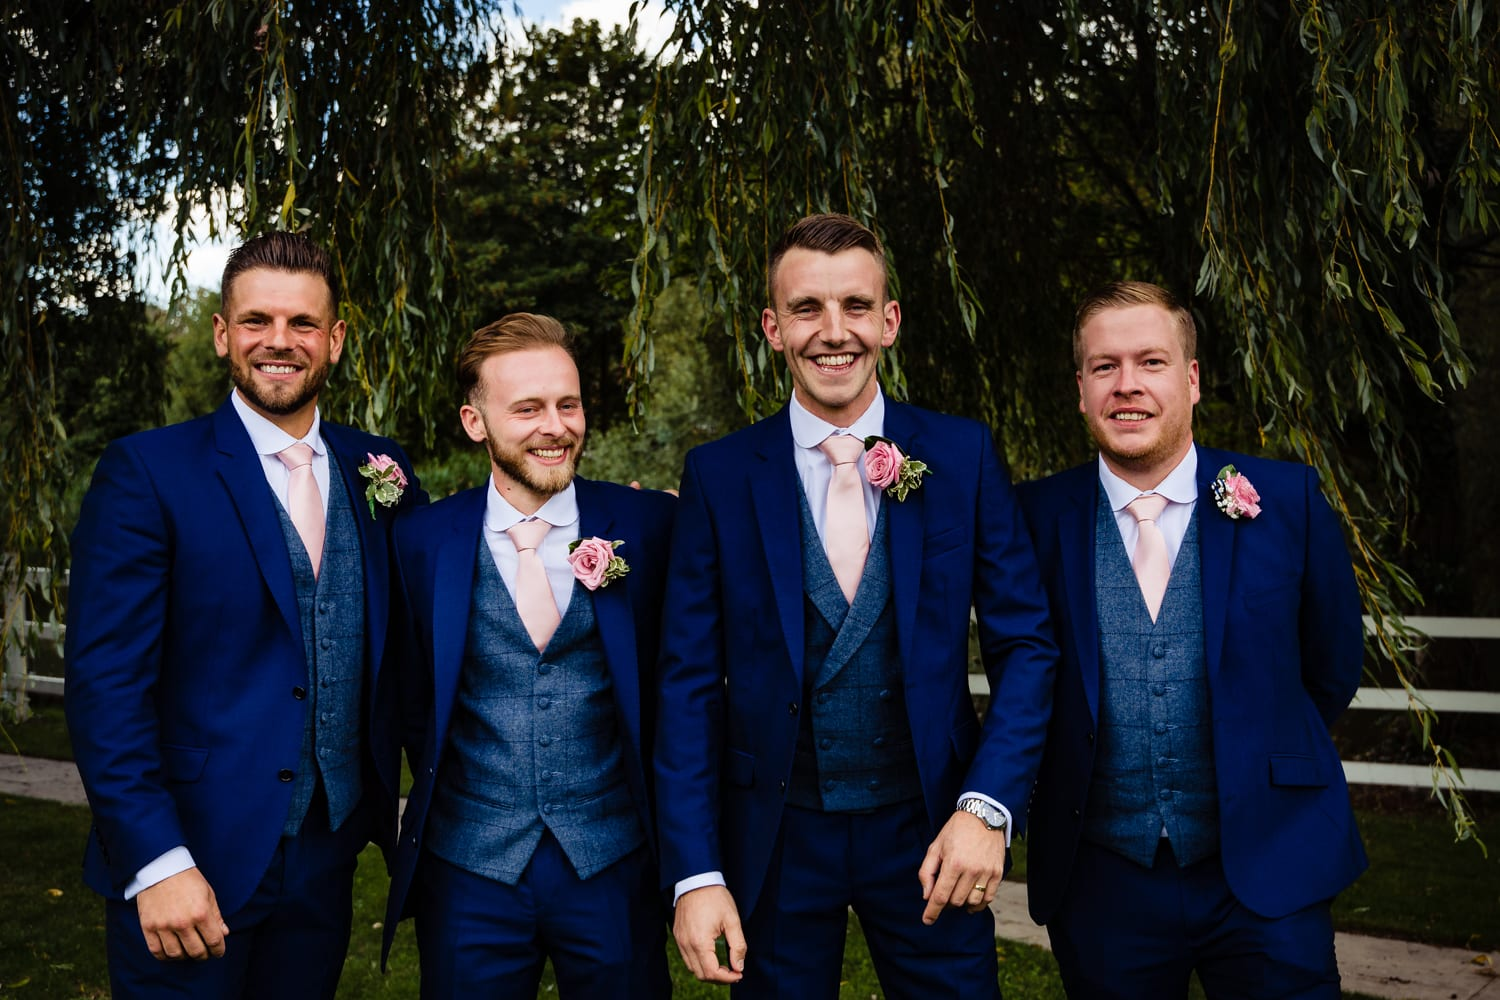 groomsmen in blue - wedding photography Essex